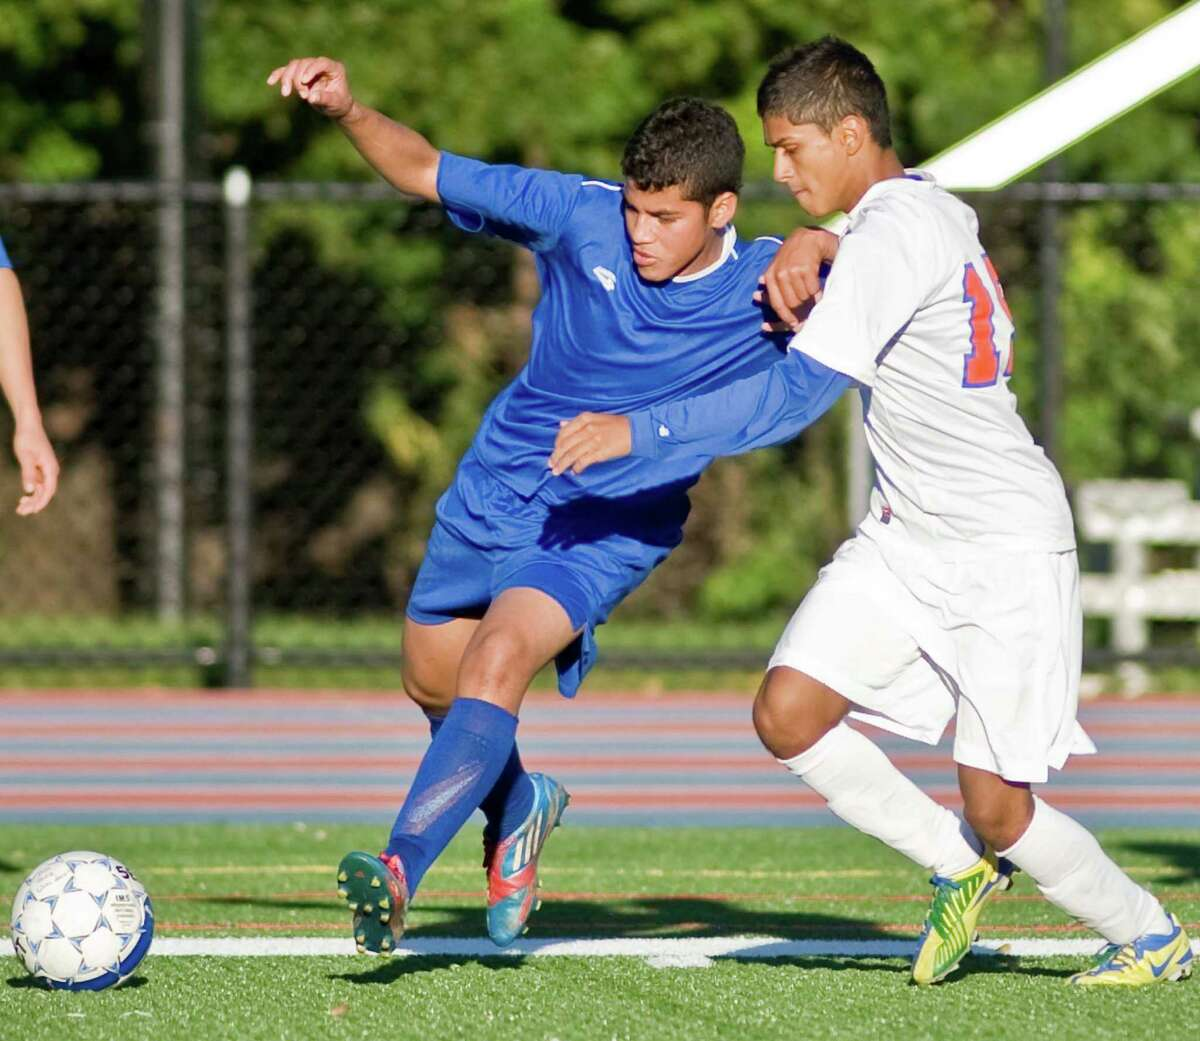 Harding High School's Arturo Rocha and Danbury High School's Richard Sant'Anna make contact while chasing the ball in a game at Danbury. Tuesday, Oct. 16, 2012